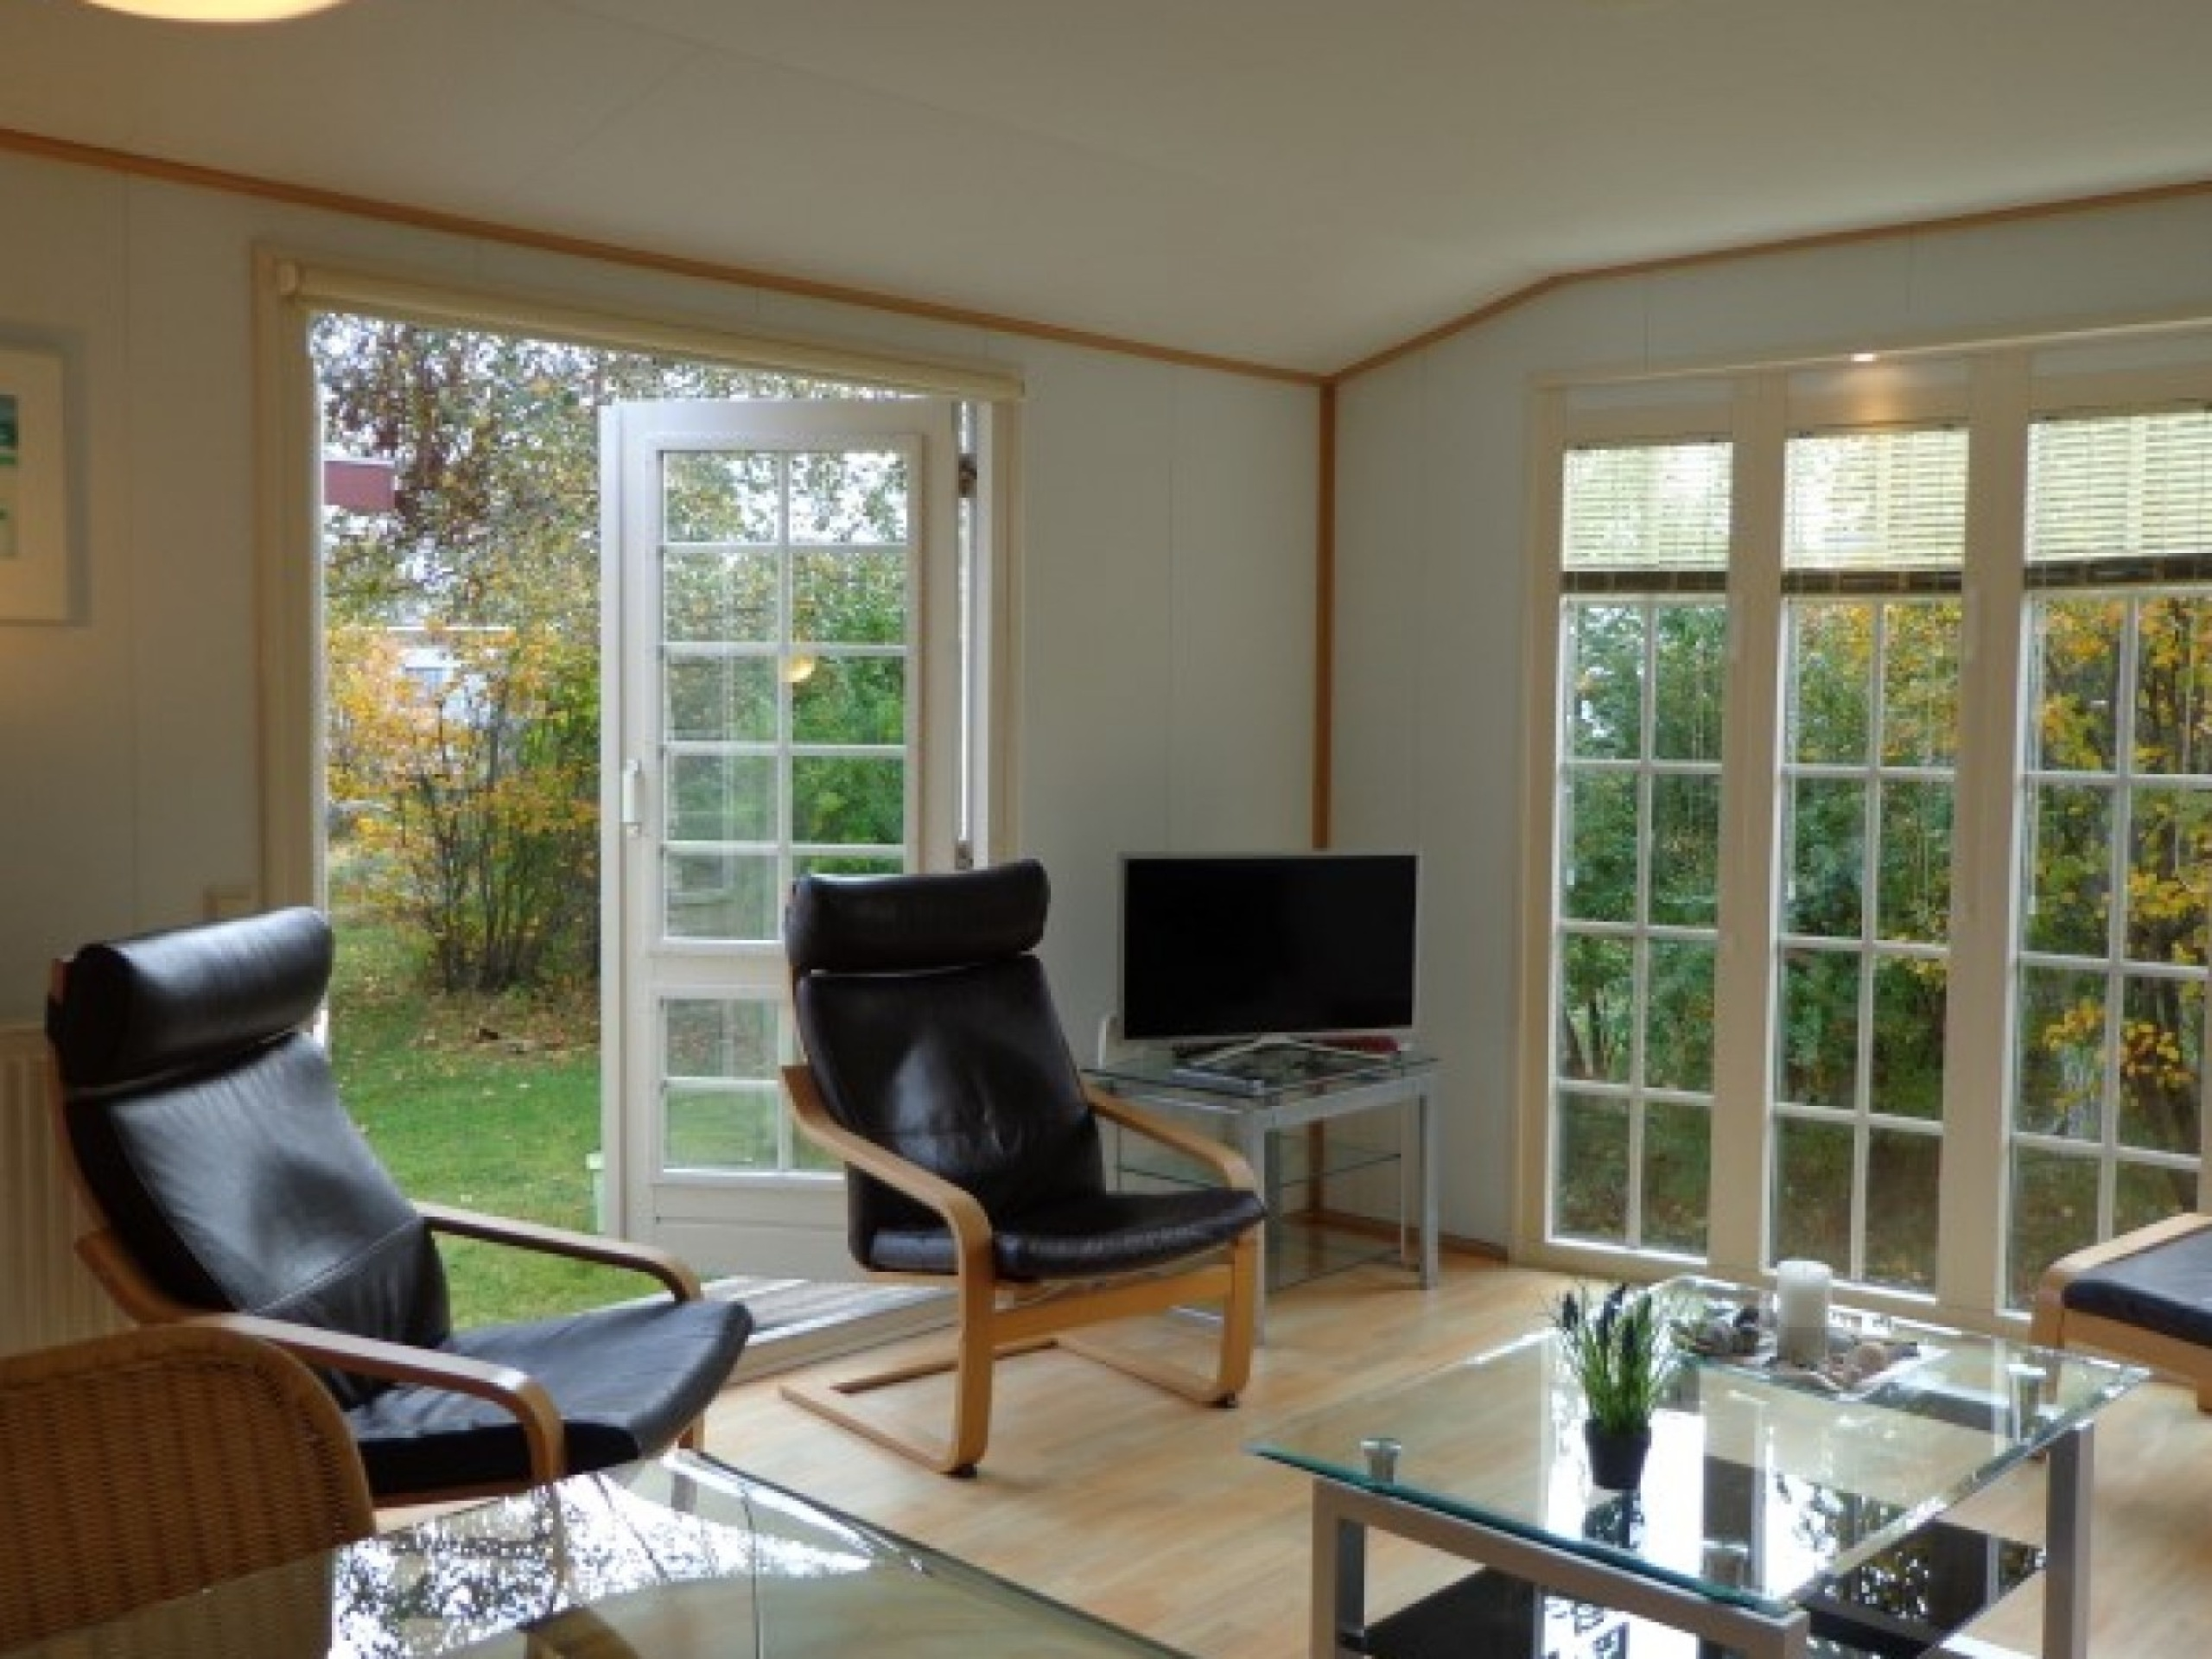 Detached chalet in a park 3 km from the beach